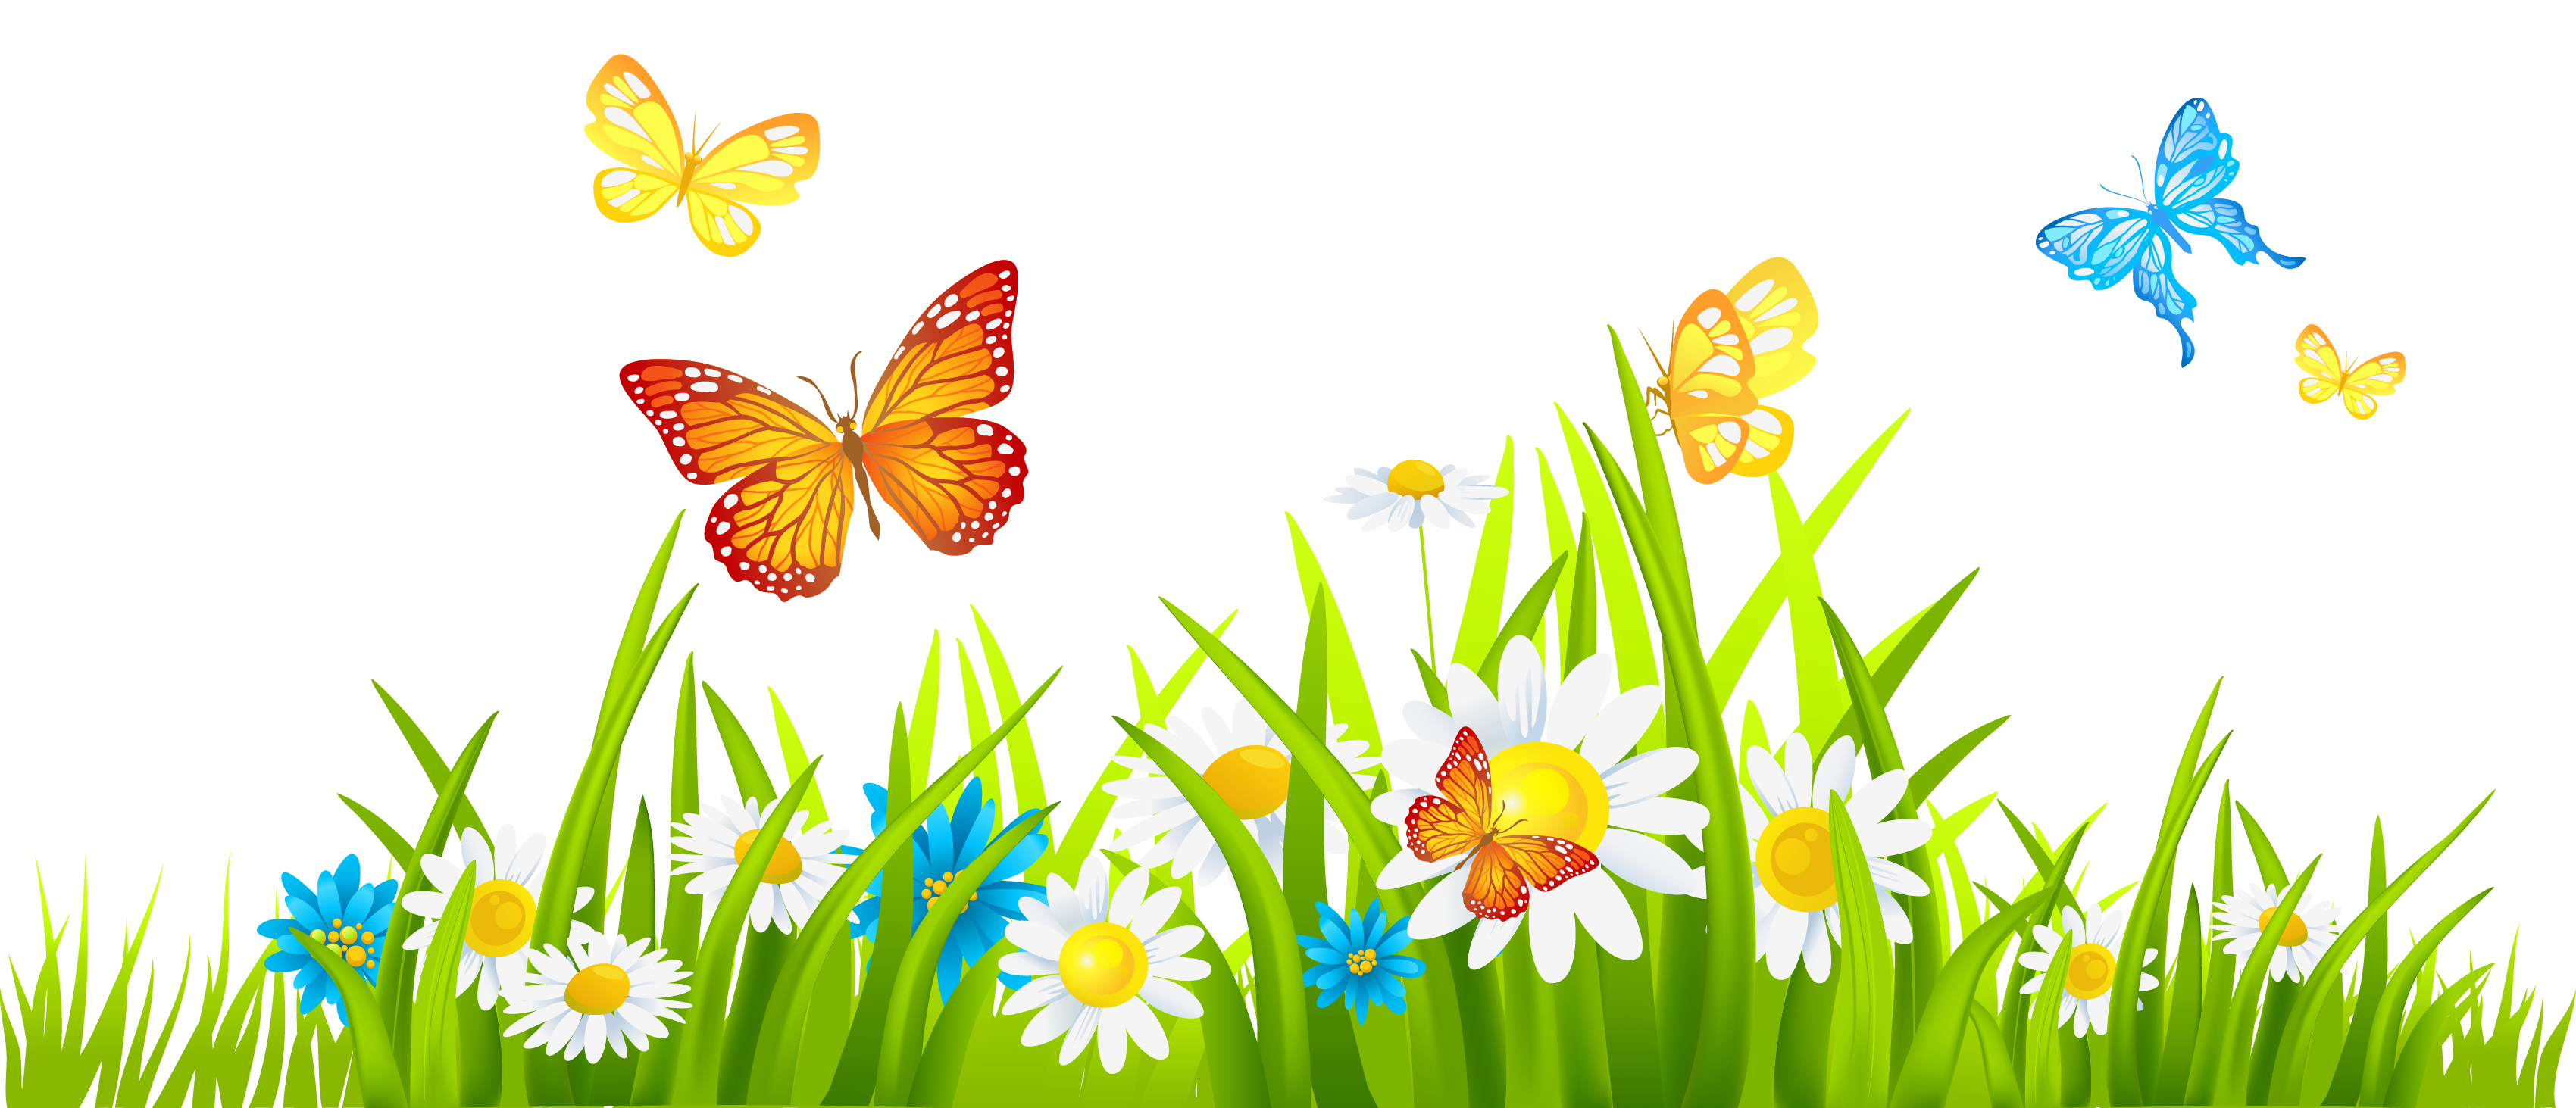 Tulip transparent grass. With colorful tulips png